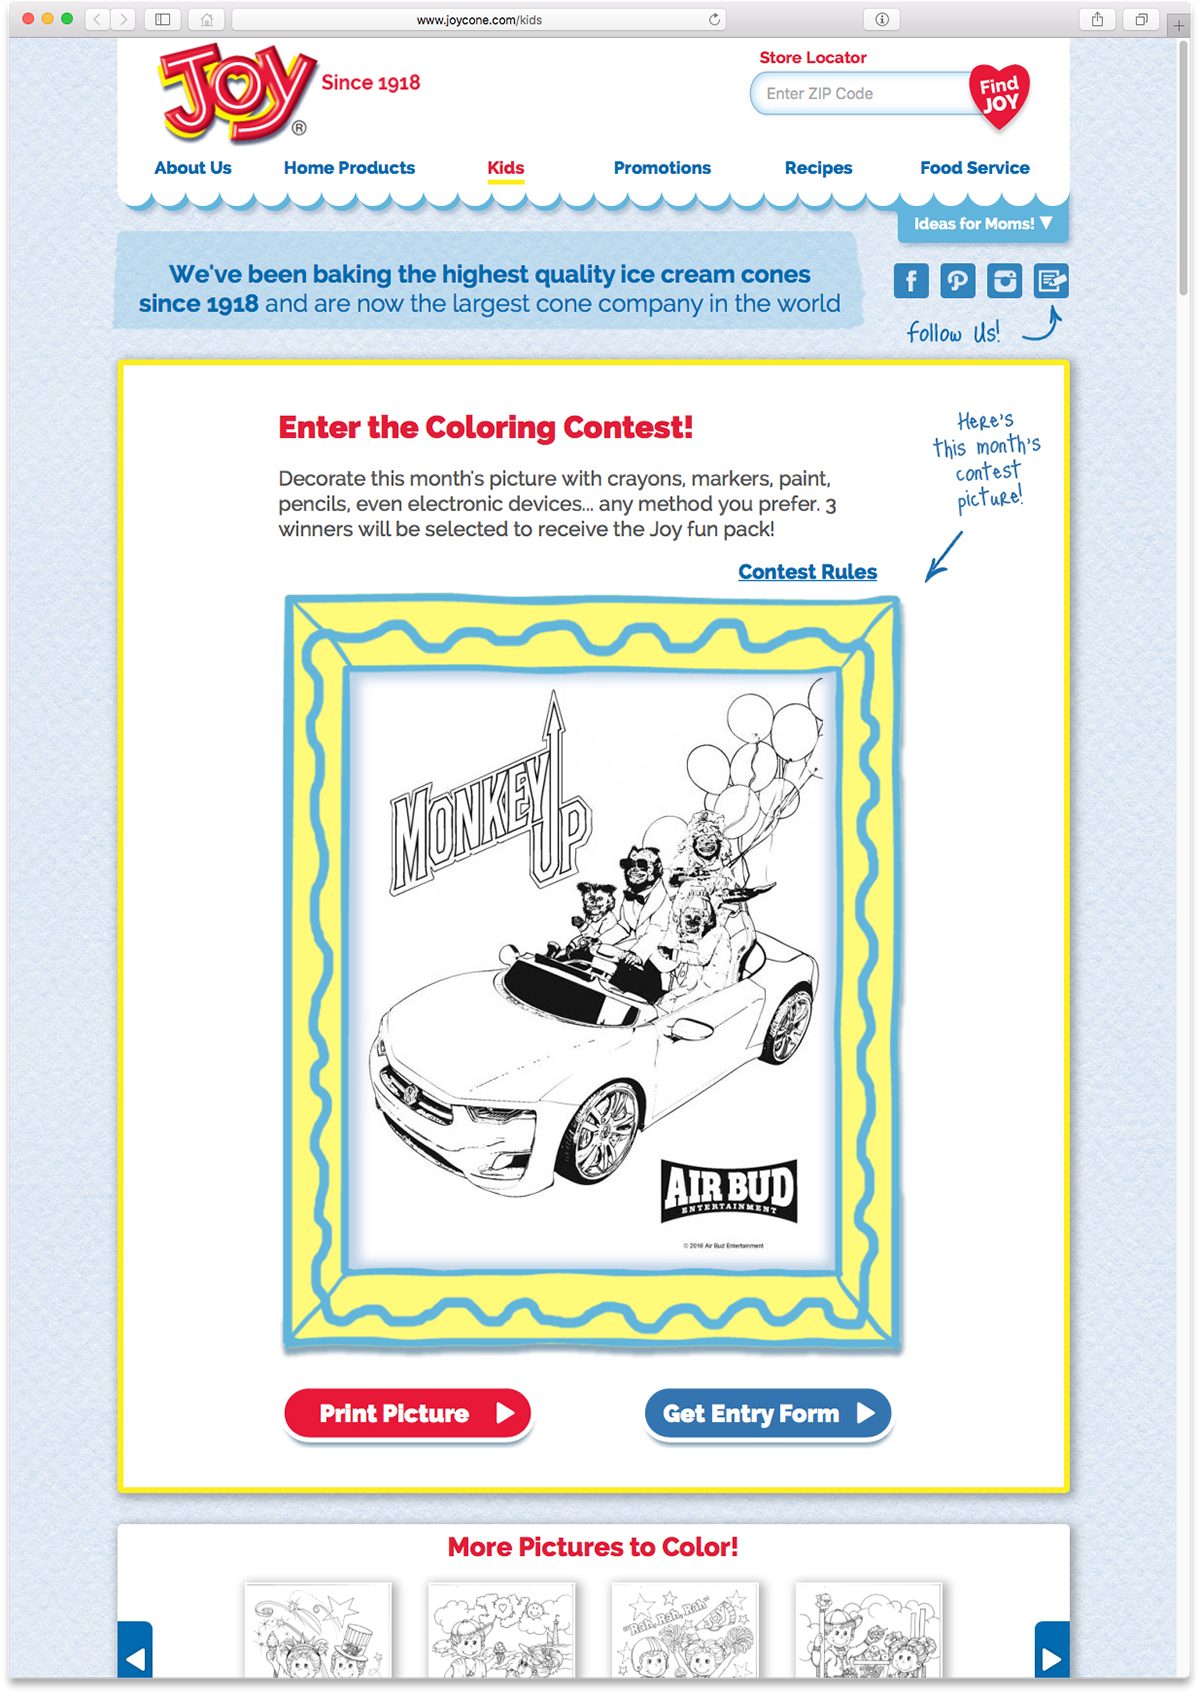 Here Is A Screen Capture Of The Final Destination For Designed Coloring Page Cross Promotional Kids Contest On Joy Cone Website